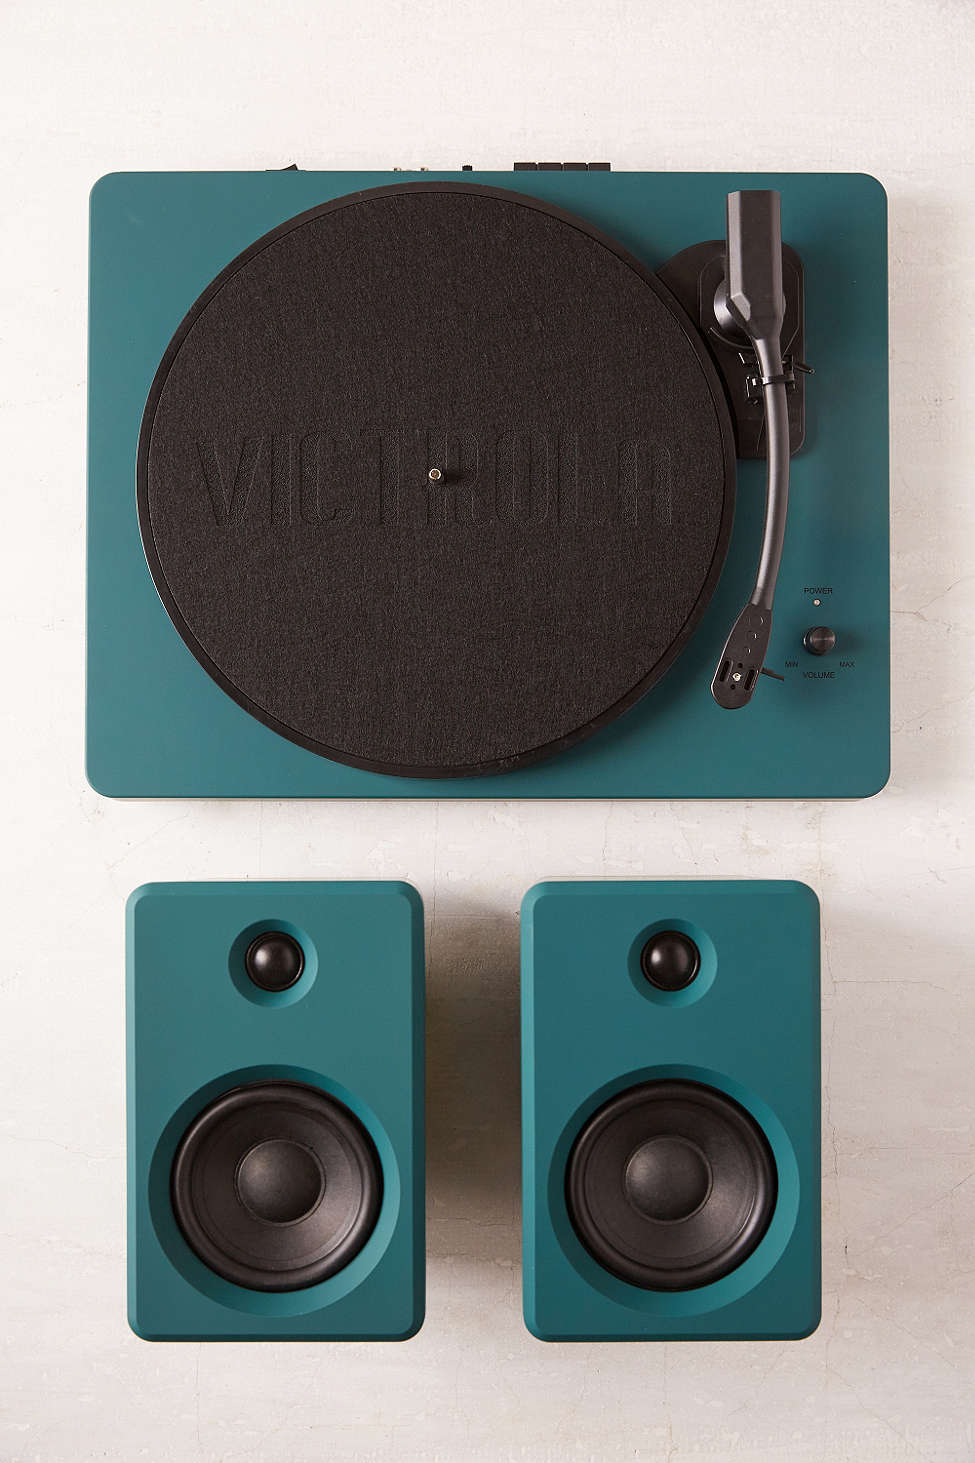 EP-33 Bluetooth Turntable with Speakers $169